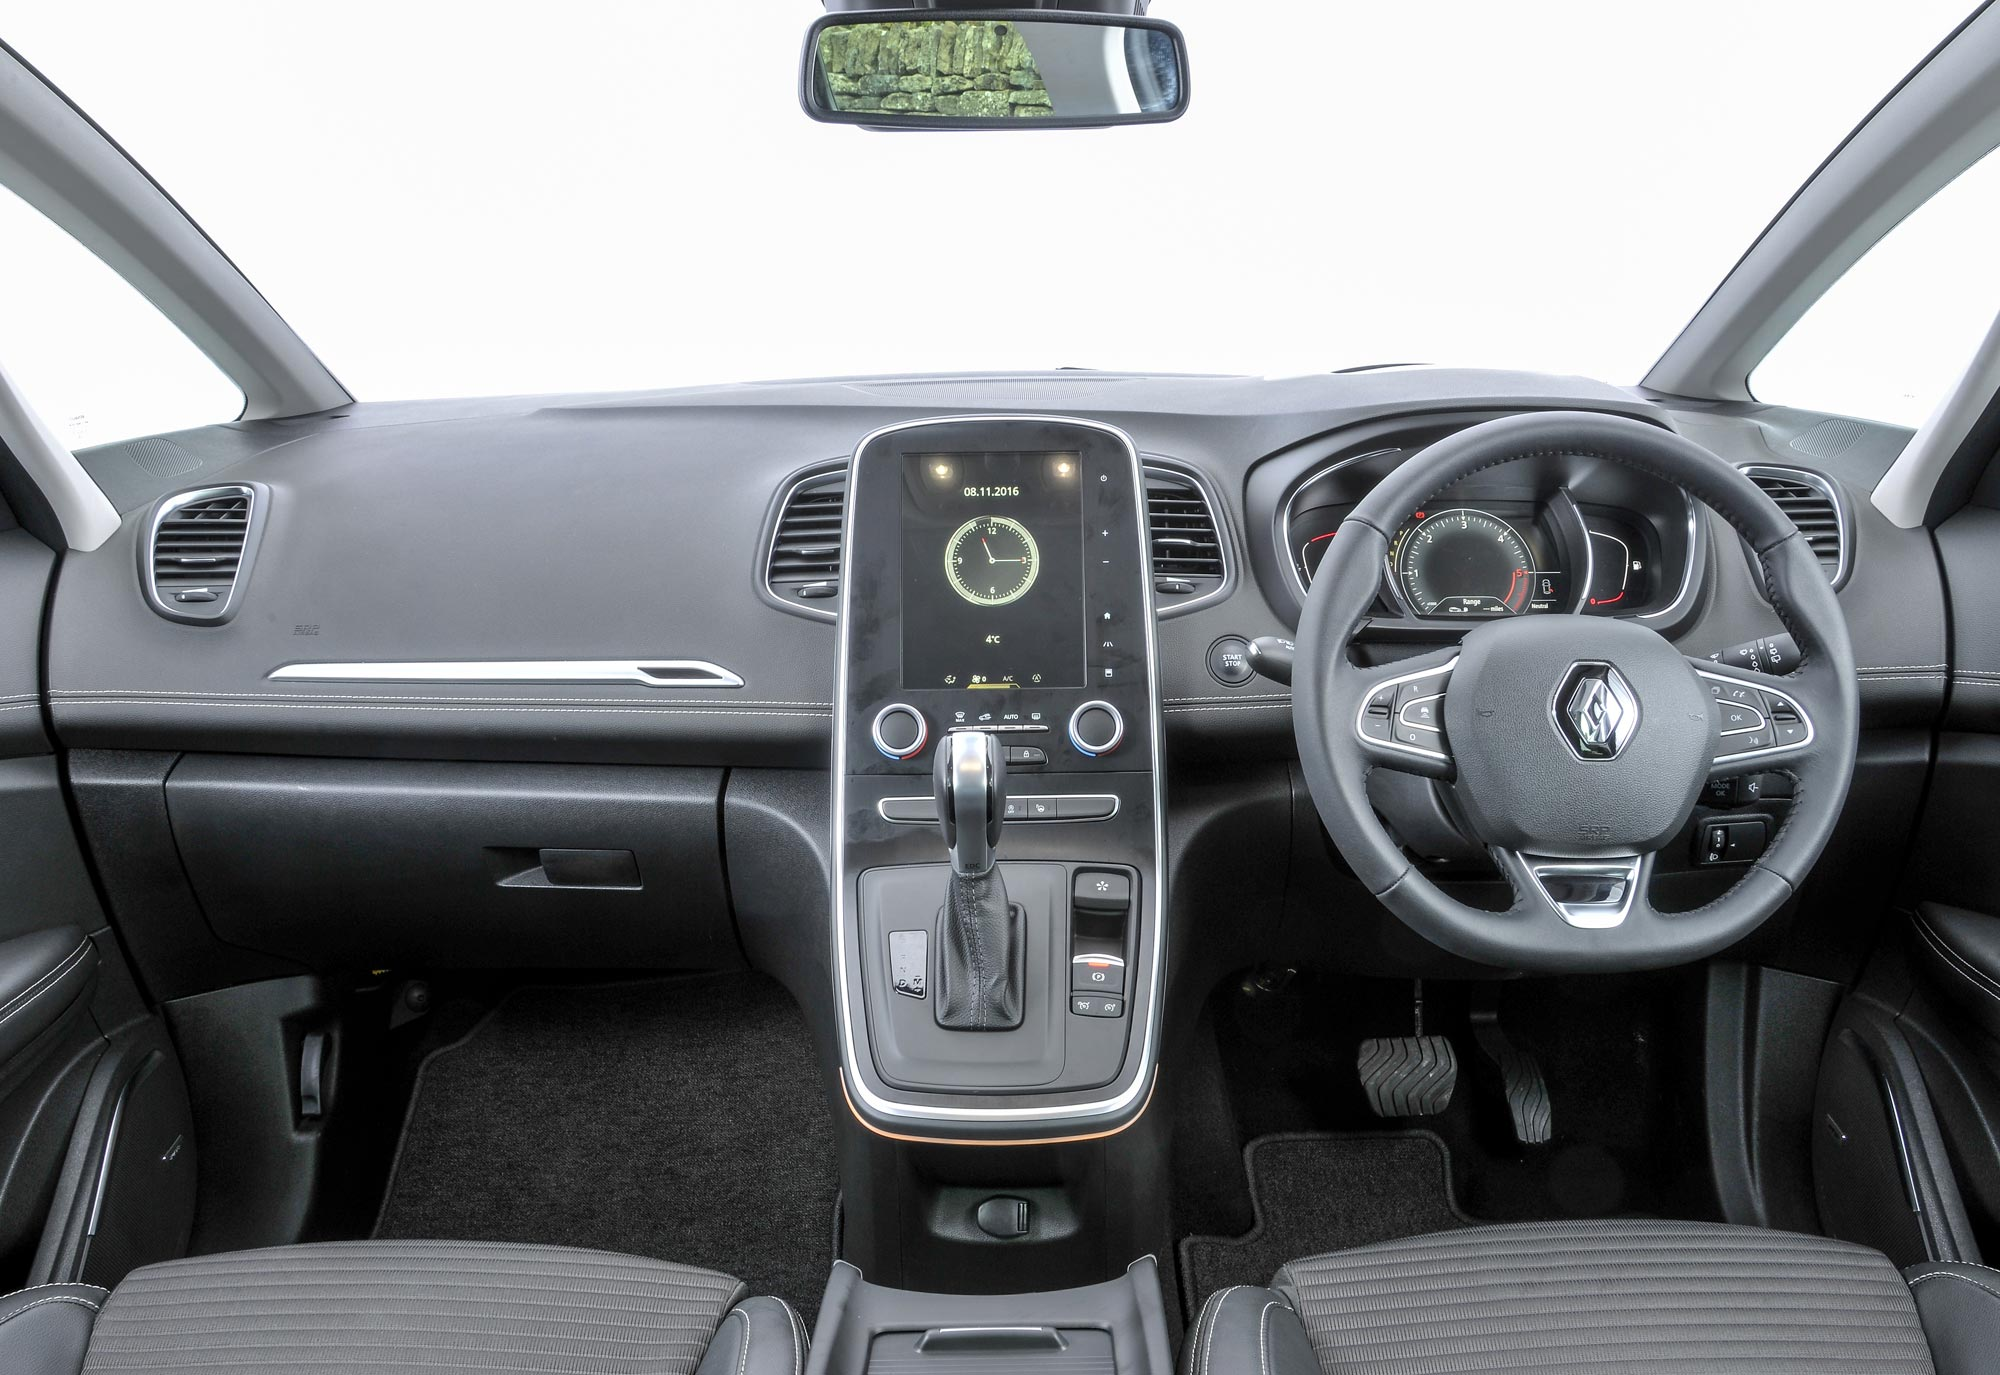 All-New-Renault-Grand-Scénic-Dynamique-S-dCi-130-(16).jpg